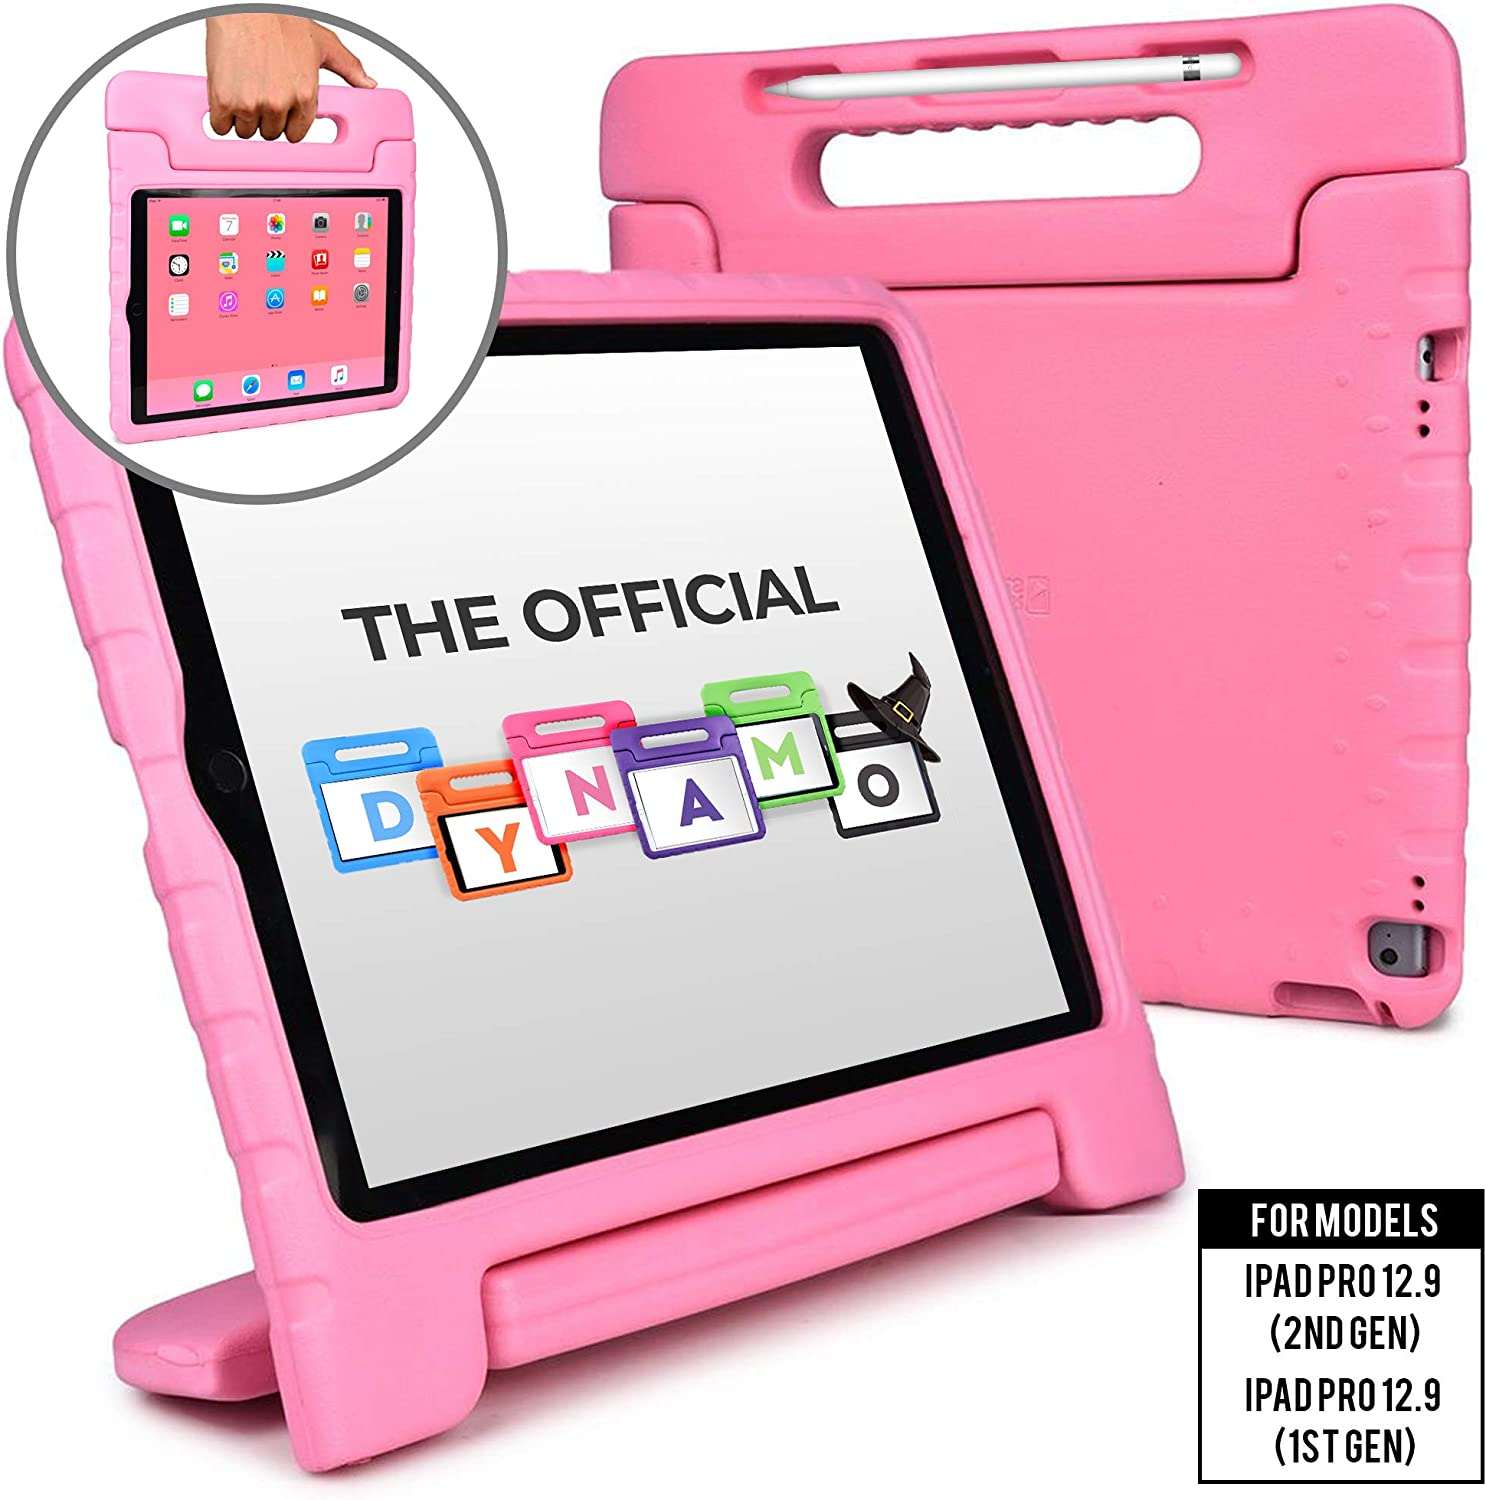 Cooper Dynamo [Rugged Kids Case] Protective Case for iPad Pro 12.9 1st 2nd Generation 2015 2017 | Child Proof Cover with Stand, Large Handle (Pink)